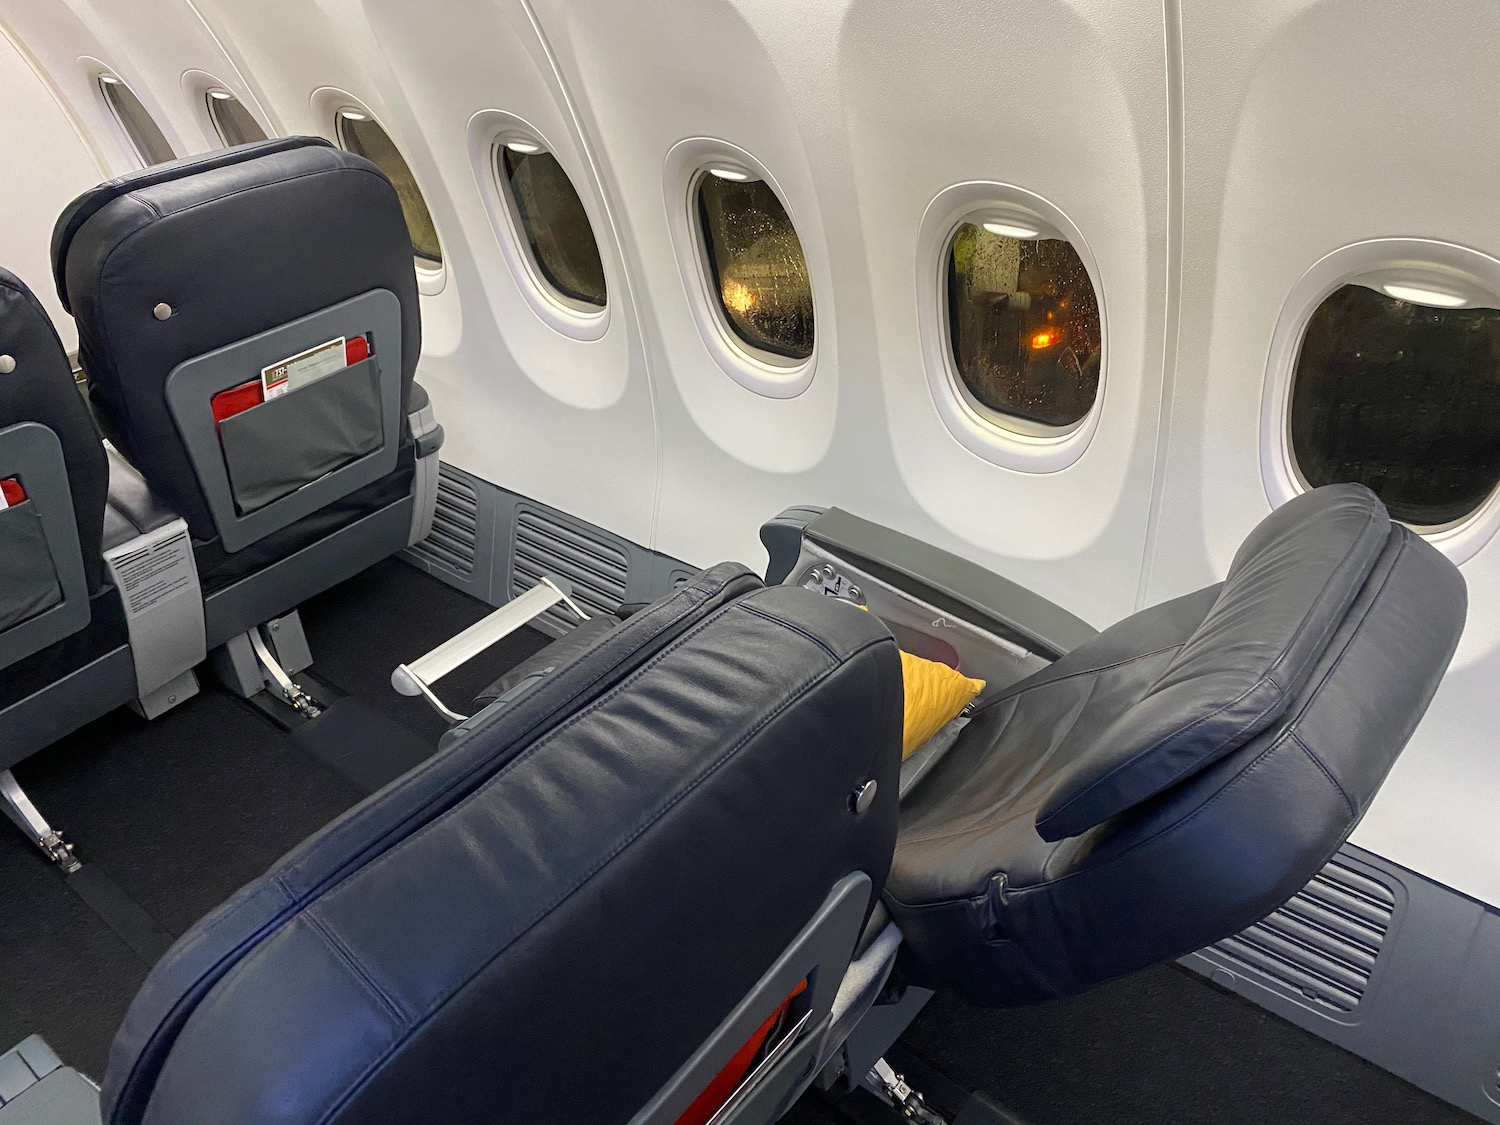 Turkish Airlines 737-900 Business Class Review